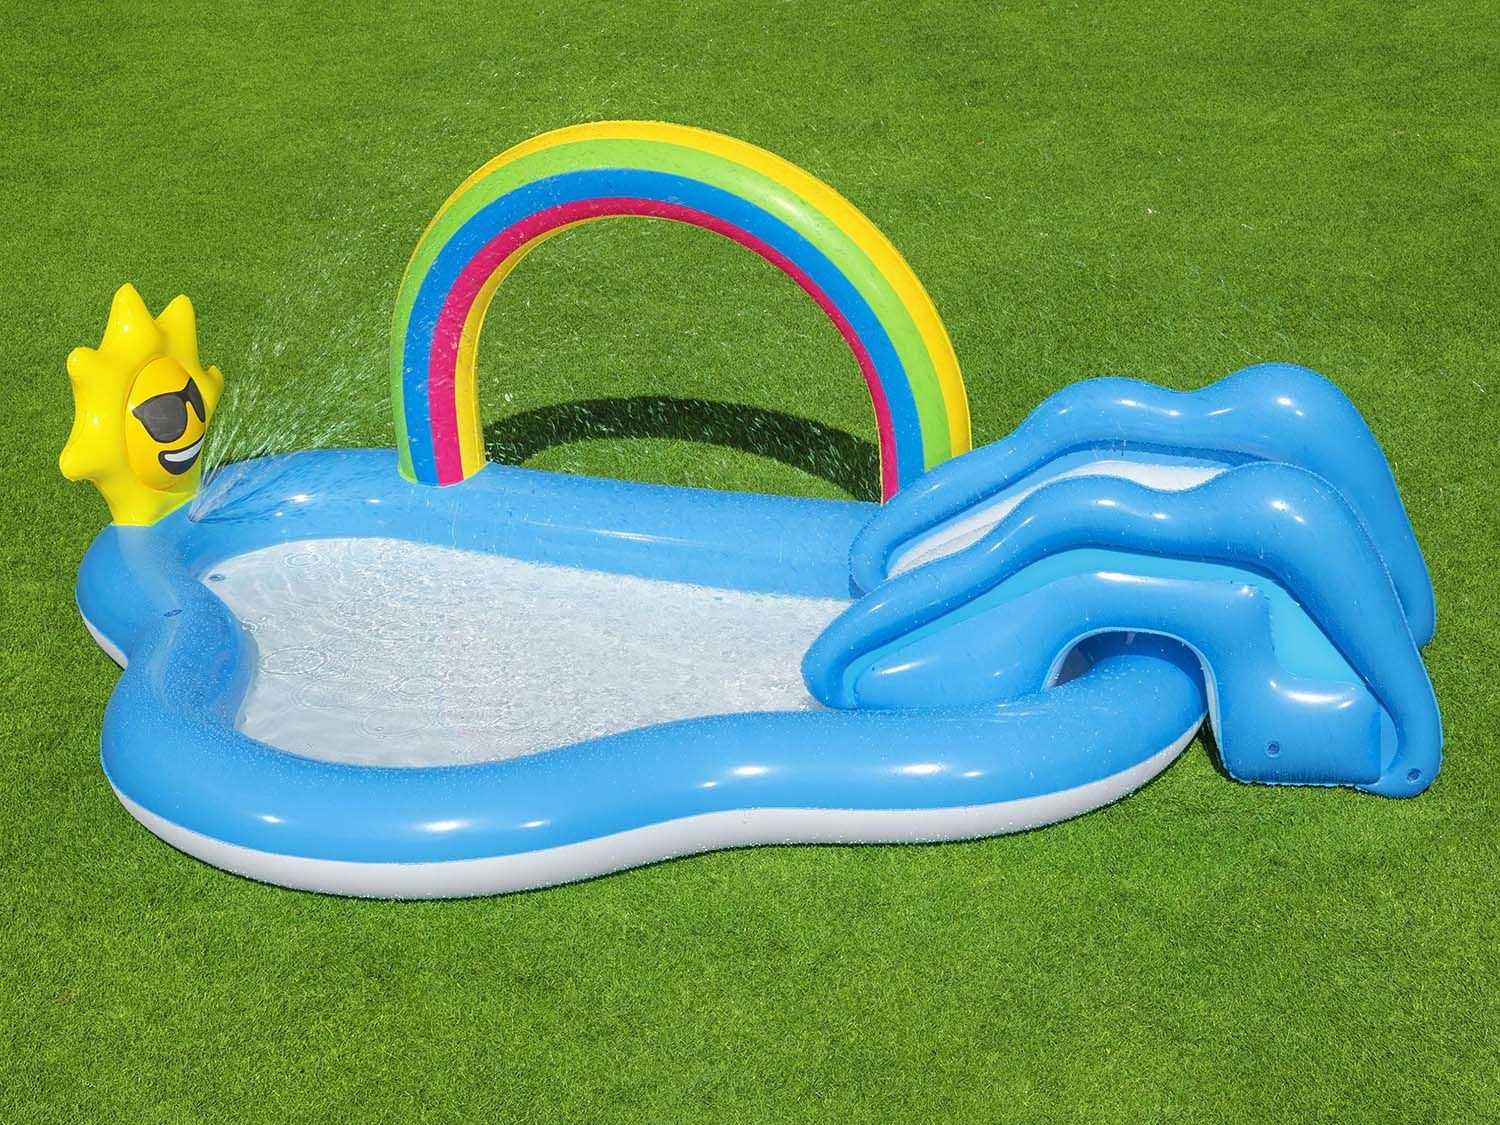 bestway-rainbow-n&rsquo-shine-pool-and-play-centre-&ndash-53092